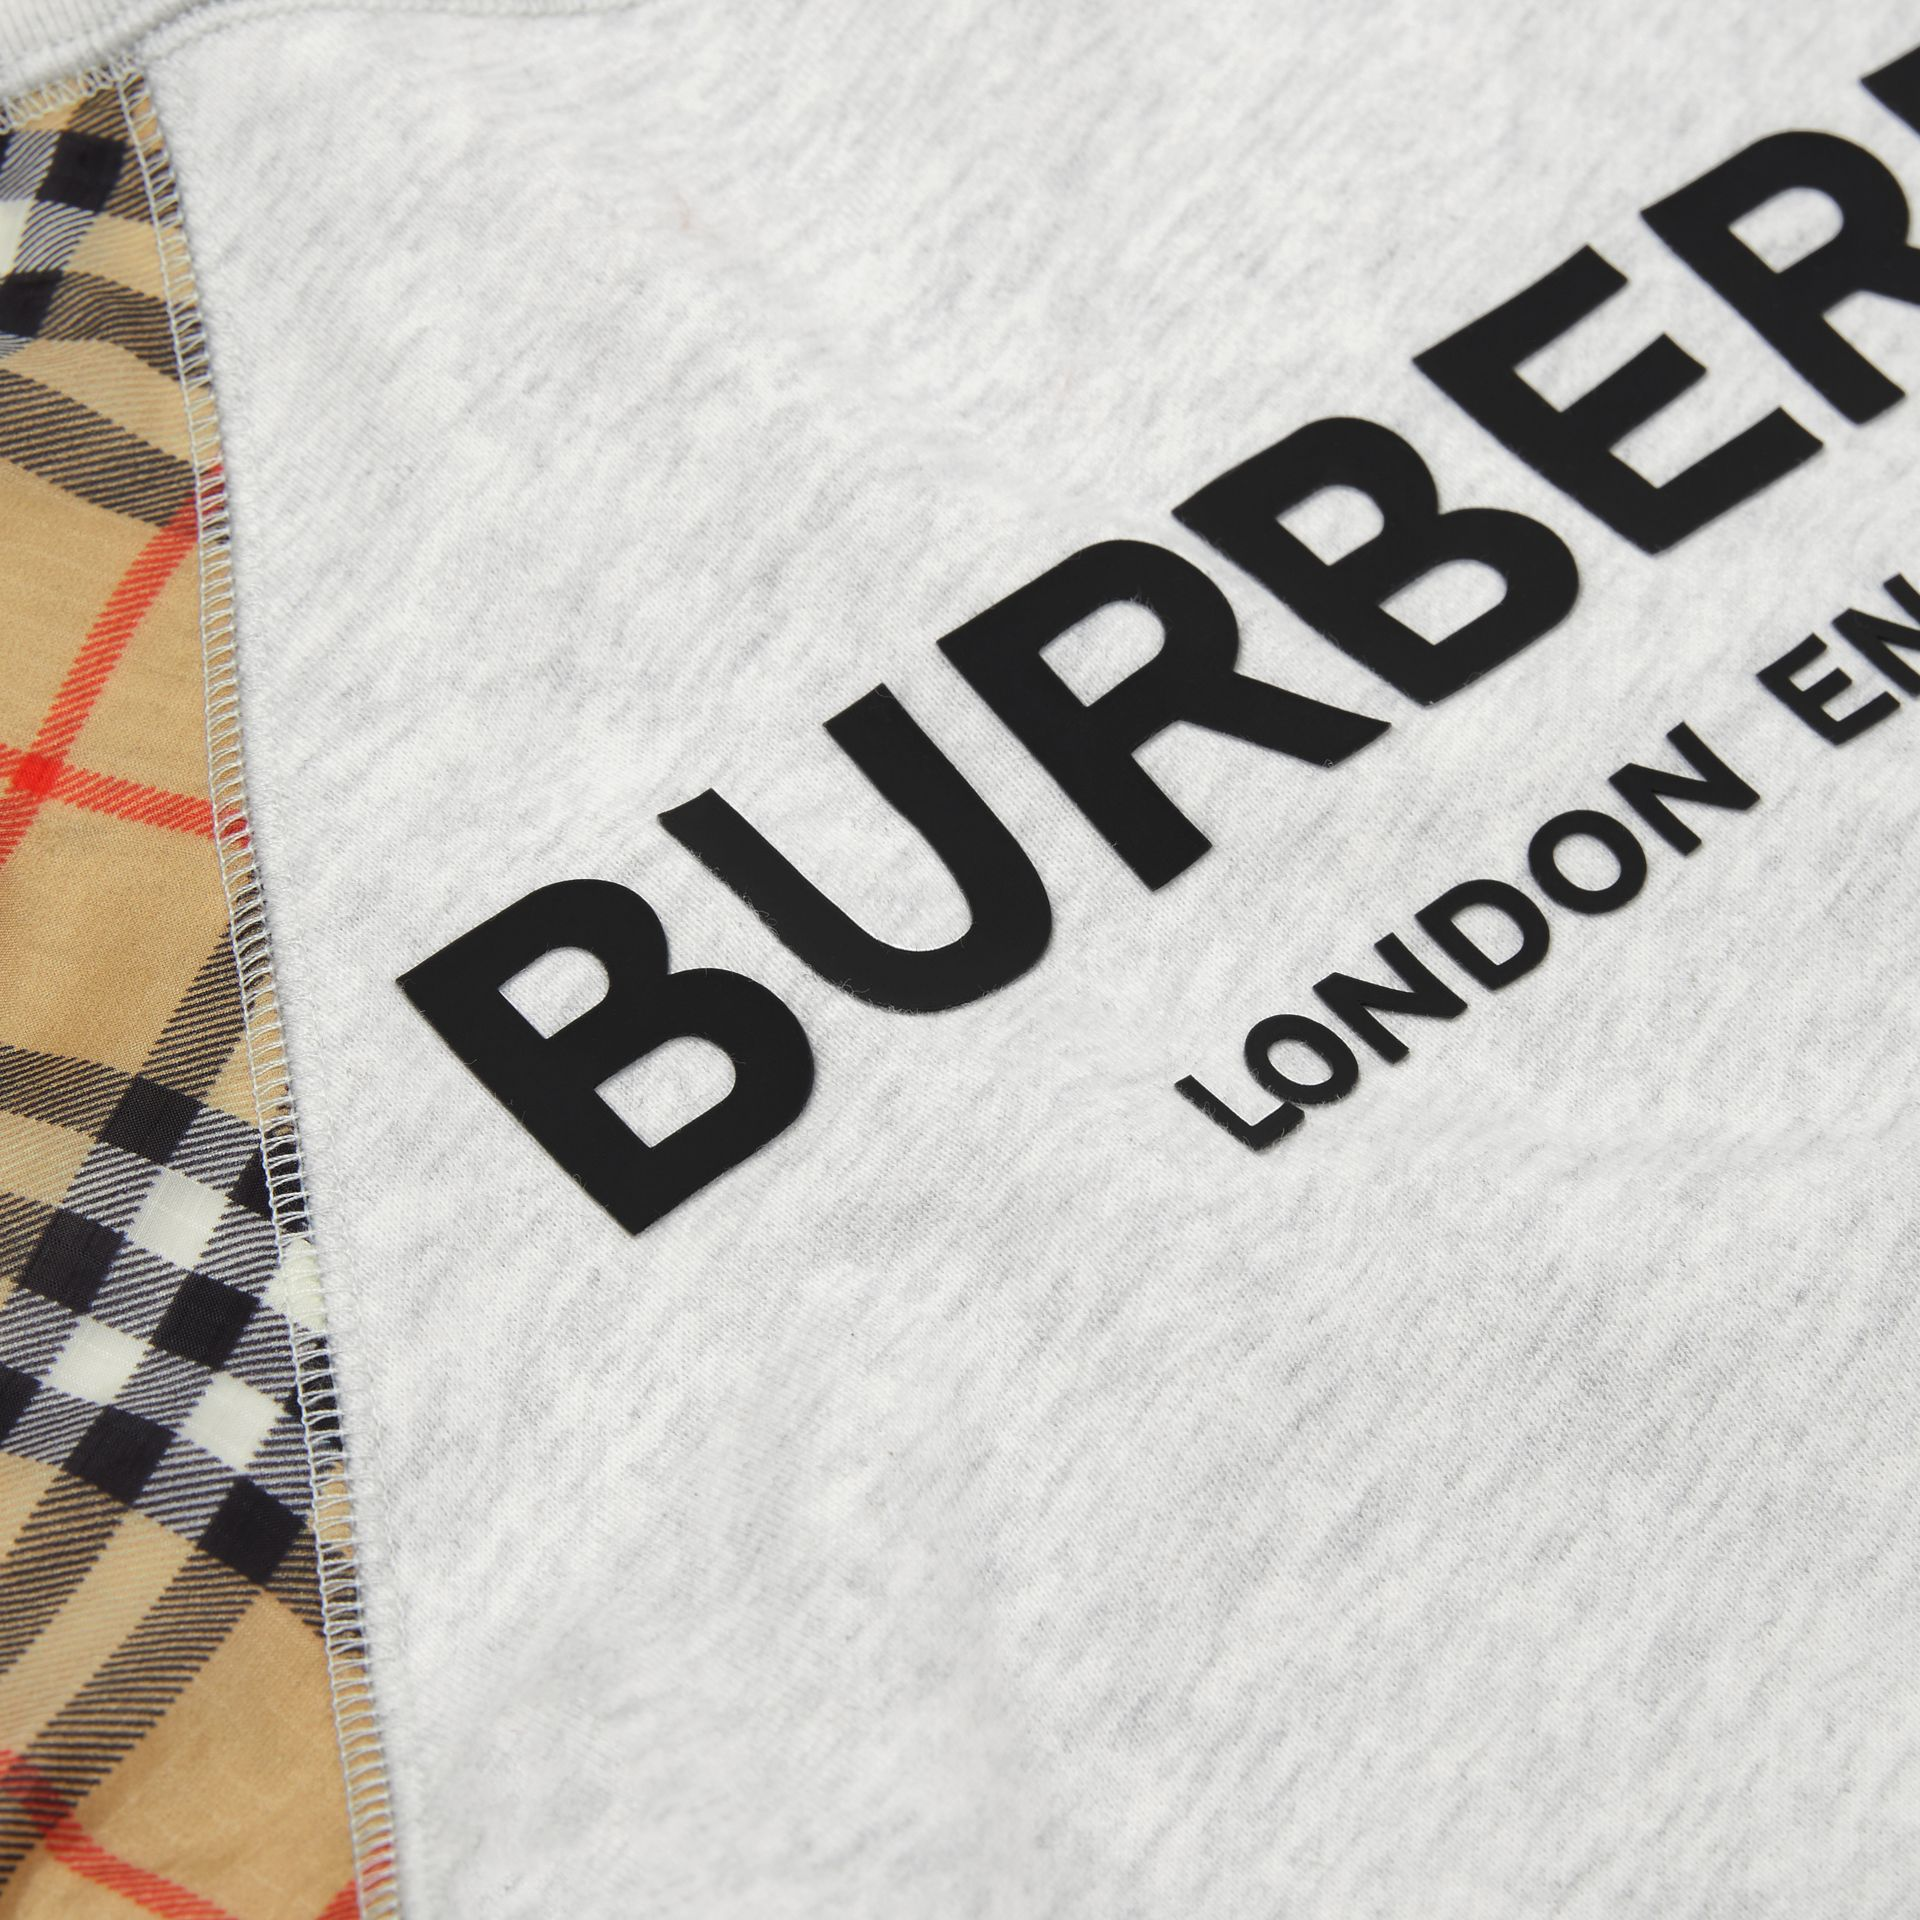 Sweat-shirt en coton avec logo et Vintage check (Camaïeu De Blancs) | Burberry - photo de la galerie 1